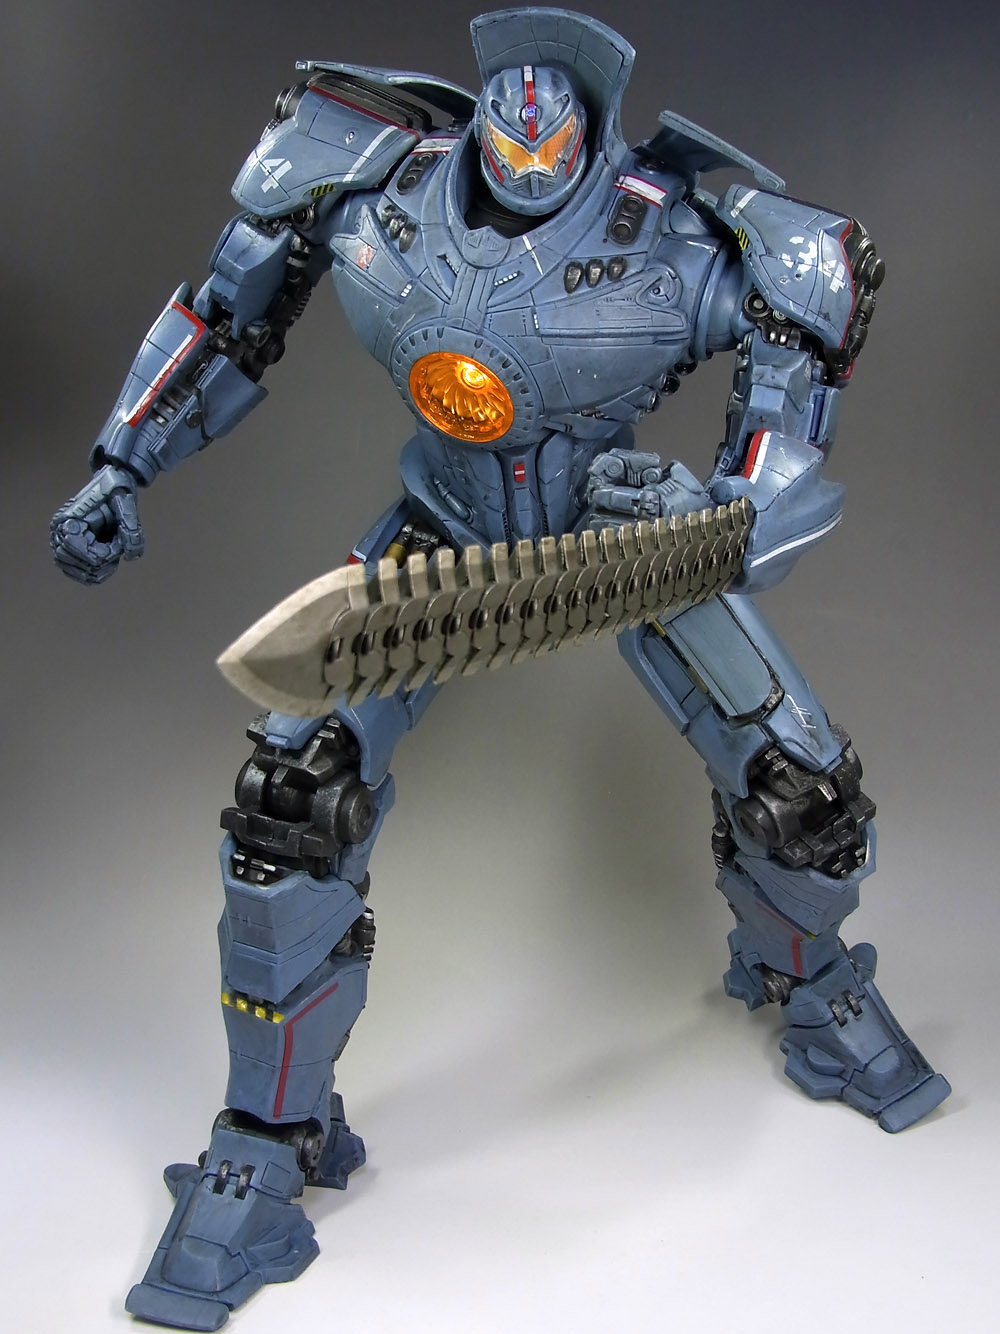 Toys For 18 : Neca inch gipsy danger in hand images tokunation